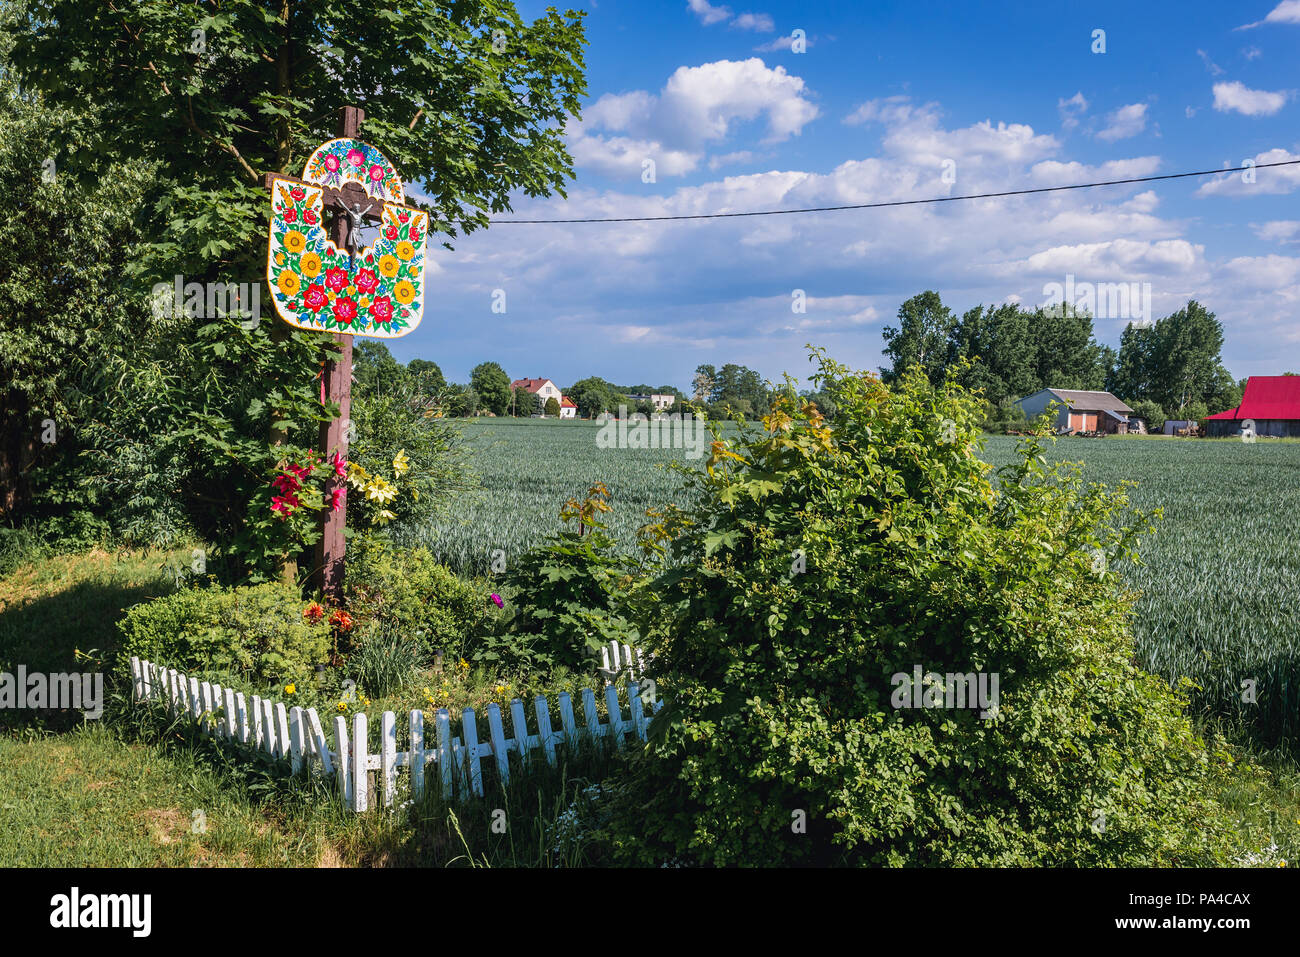 Wayside cross in Zalipie village in Poland, known for its local tradition of floral paintings made famous by folk artist Felicja Curylowa - Stock Image